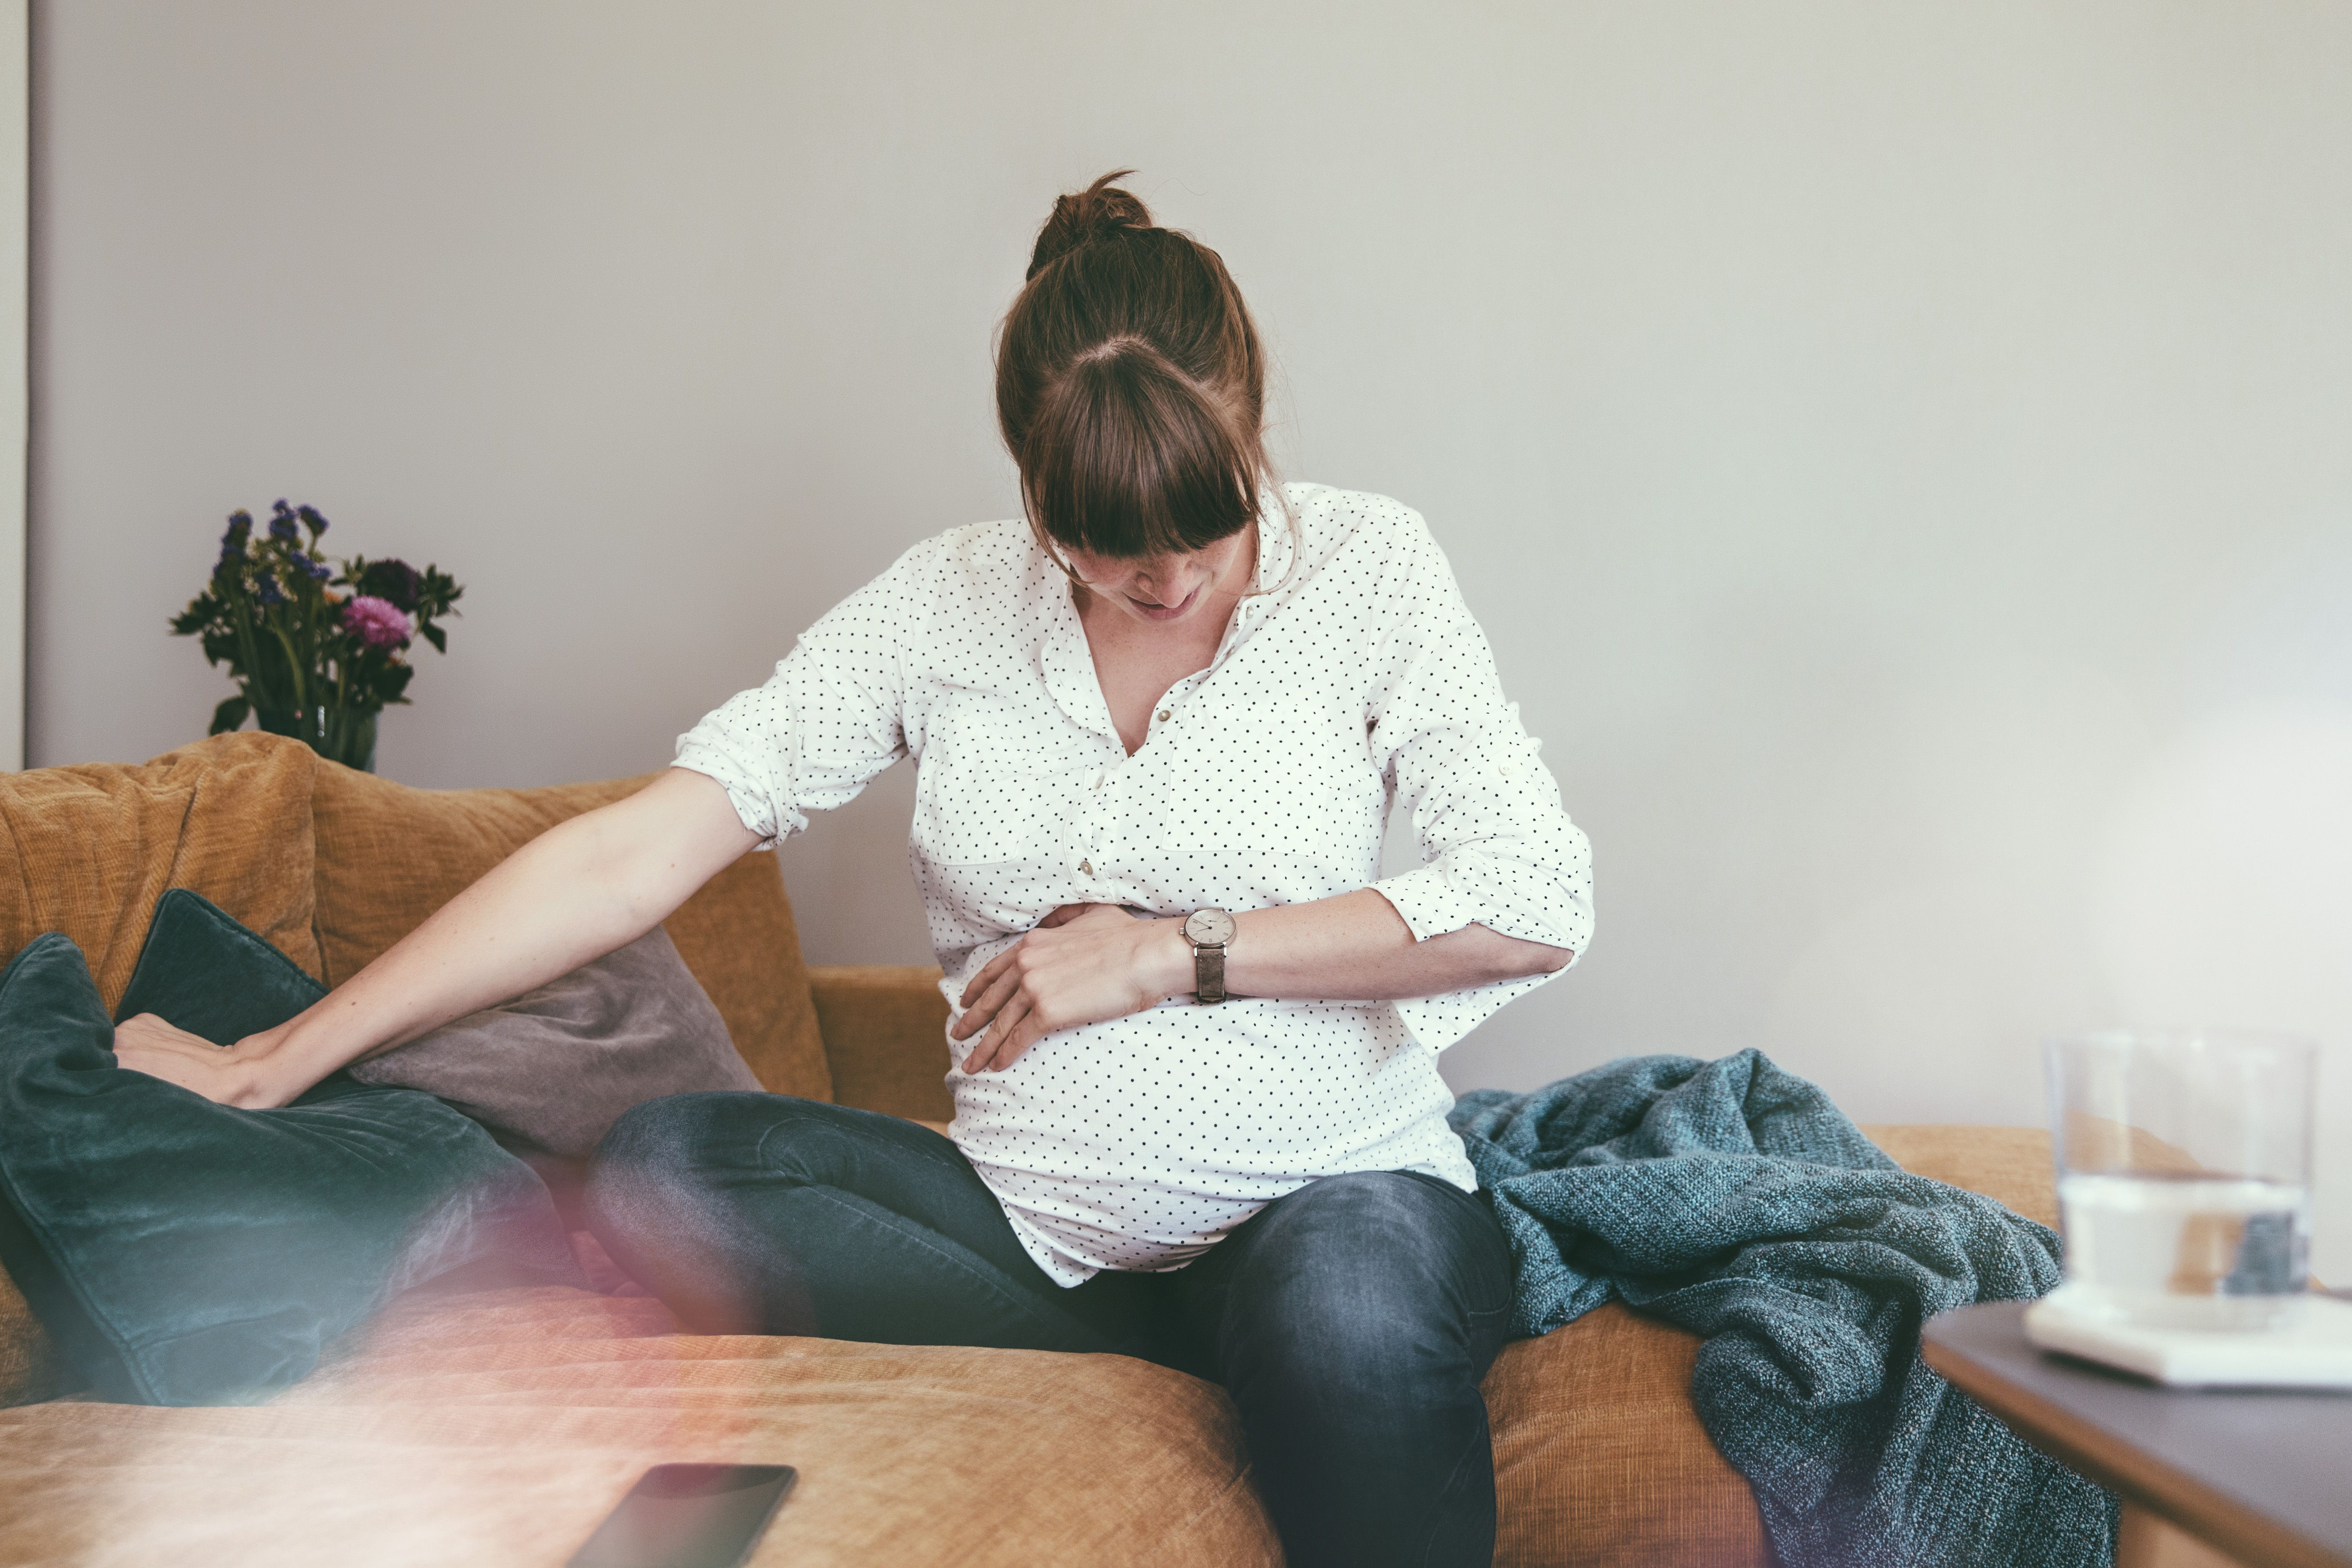 Expectant mother timing her contractions while sitting on couch at home